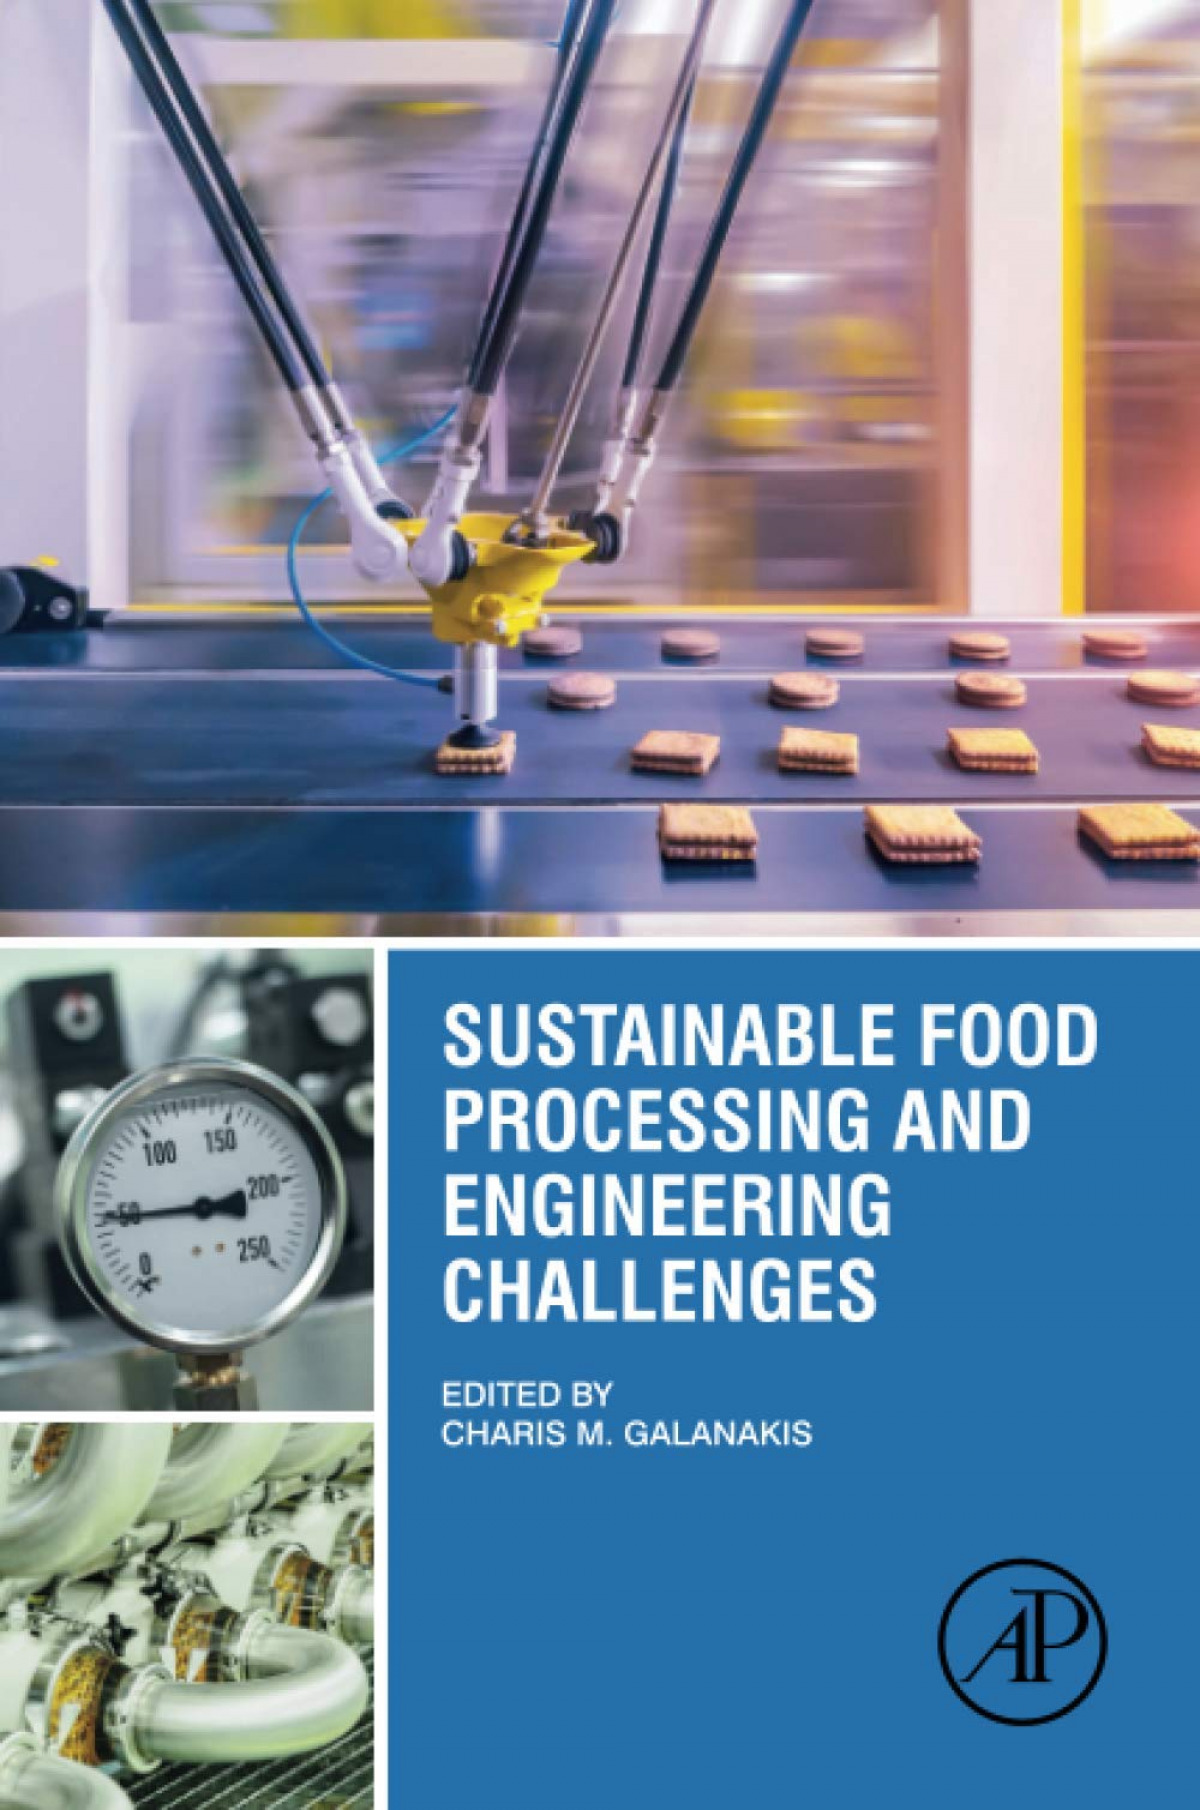 SUSTAINABLE FOOD PROCESSING ENGINEERING CHALLENGES